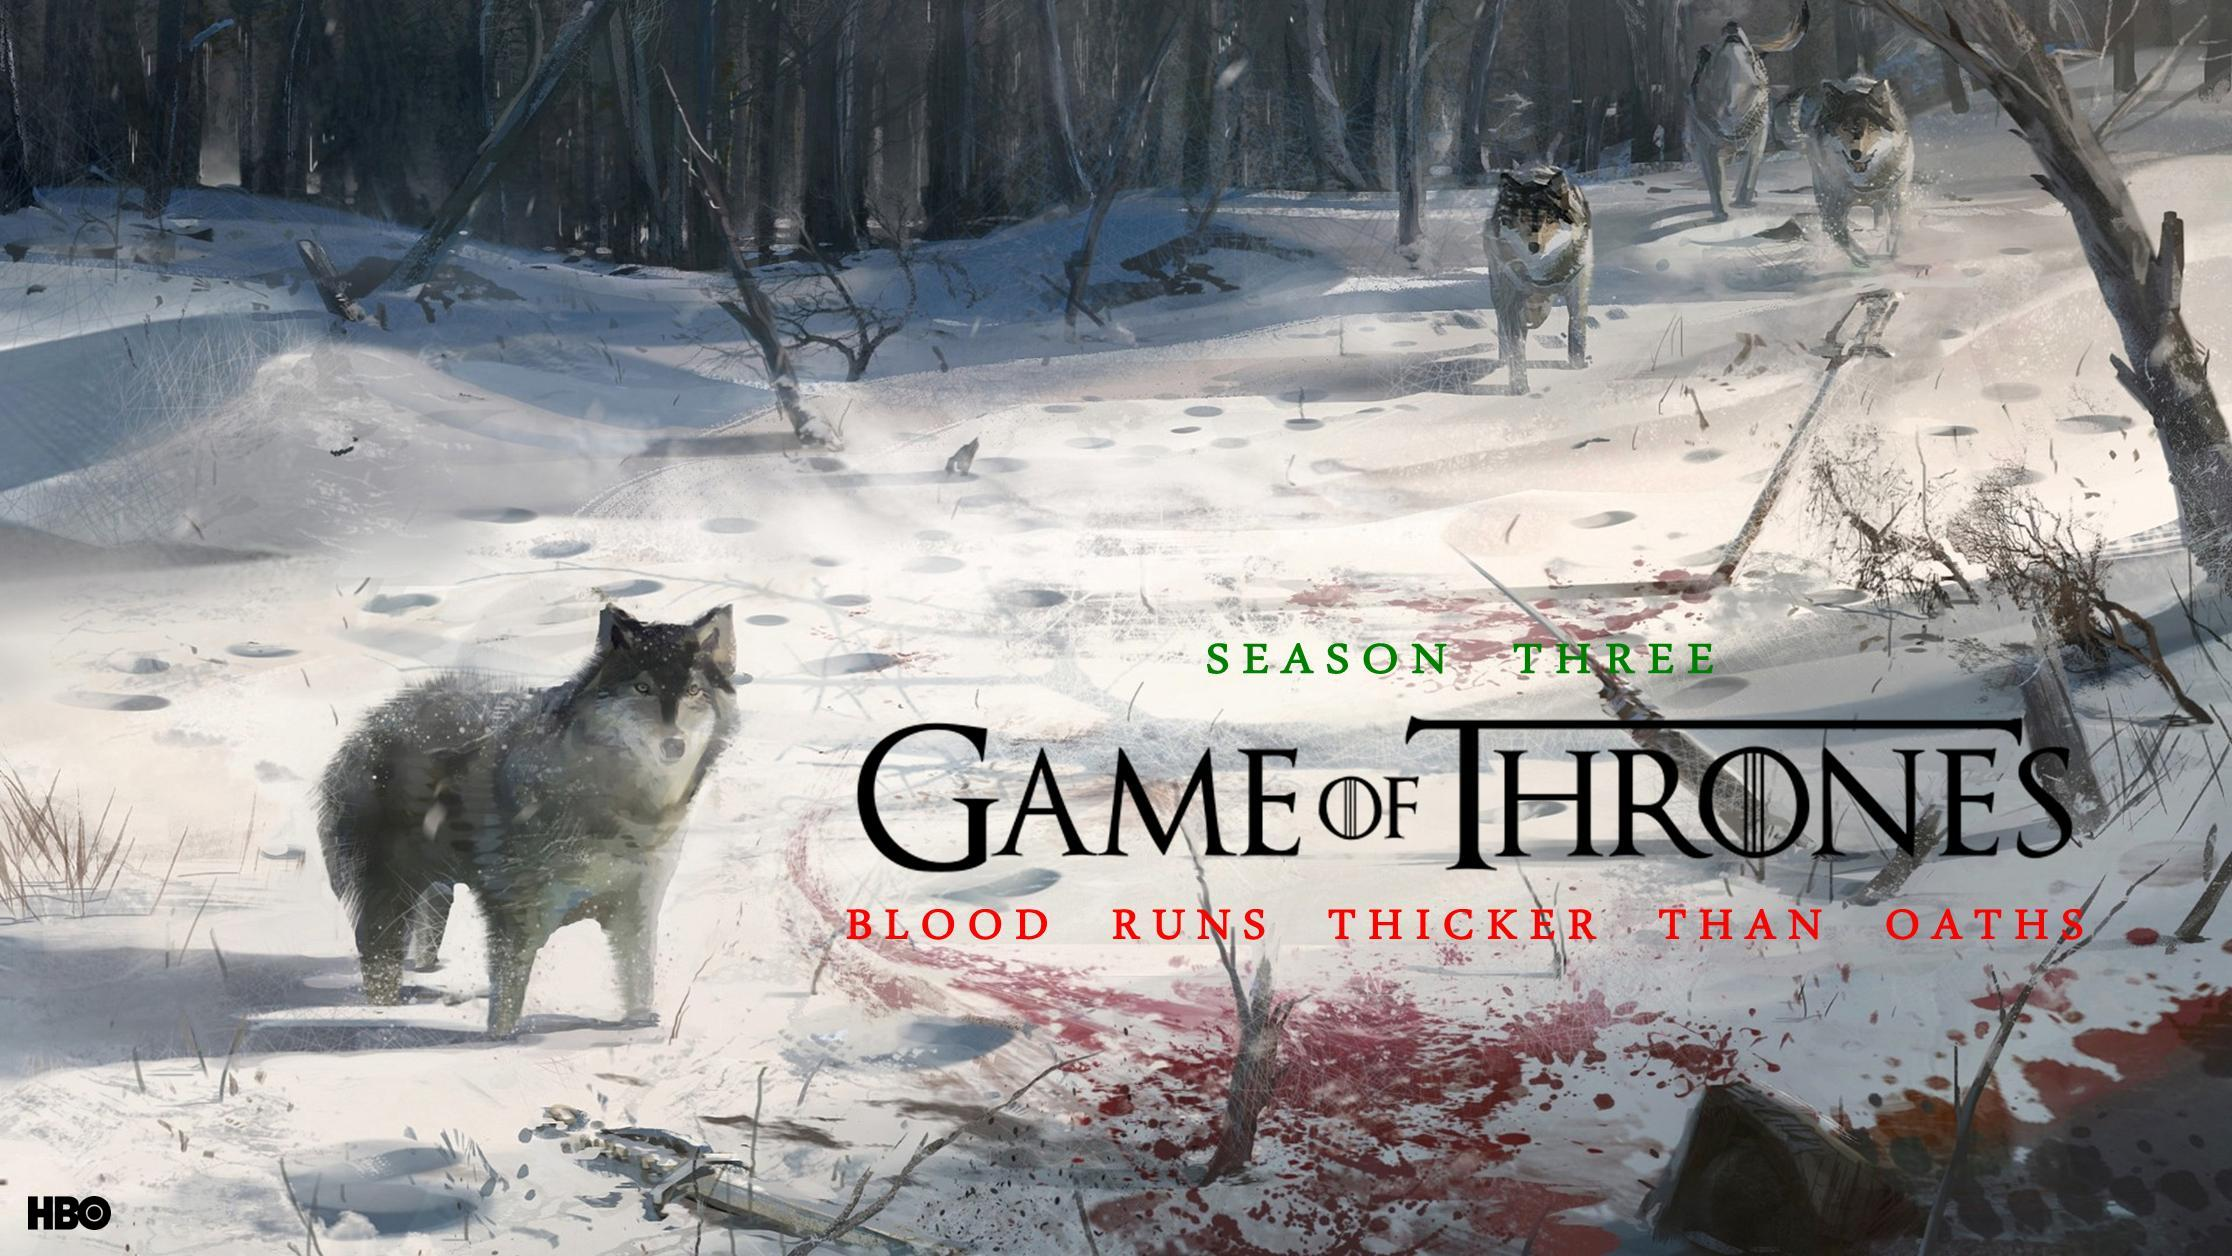 Season 3 Game of Thrones Desktop